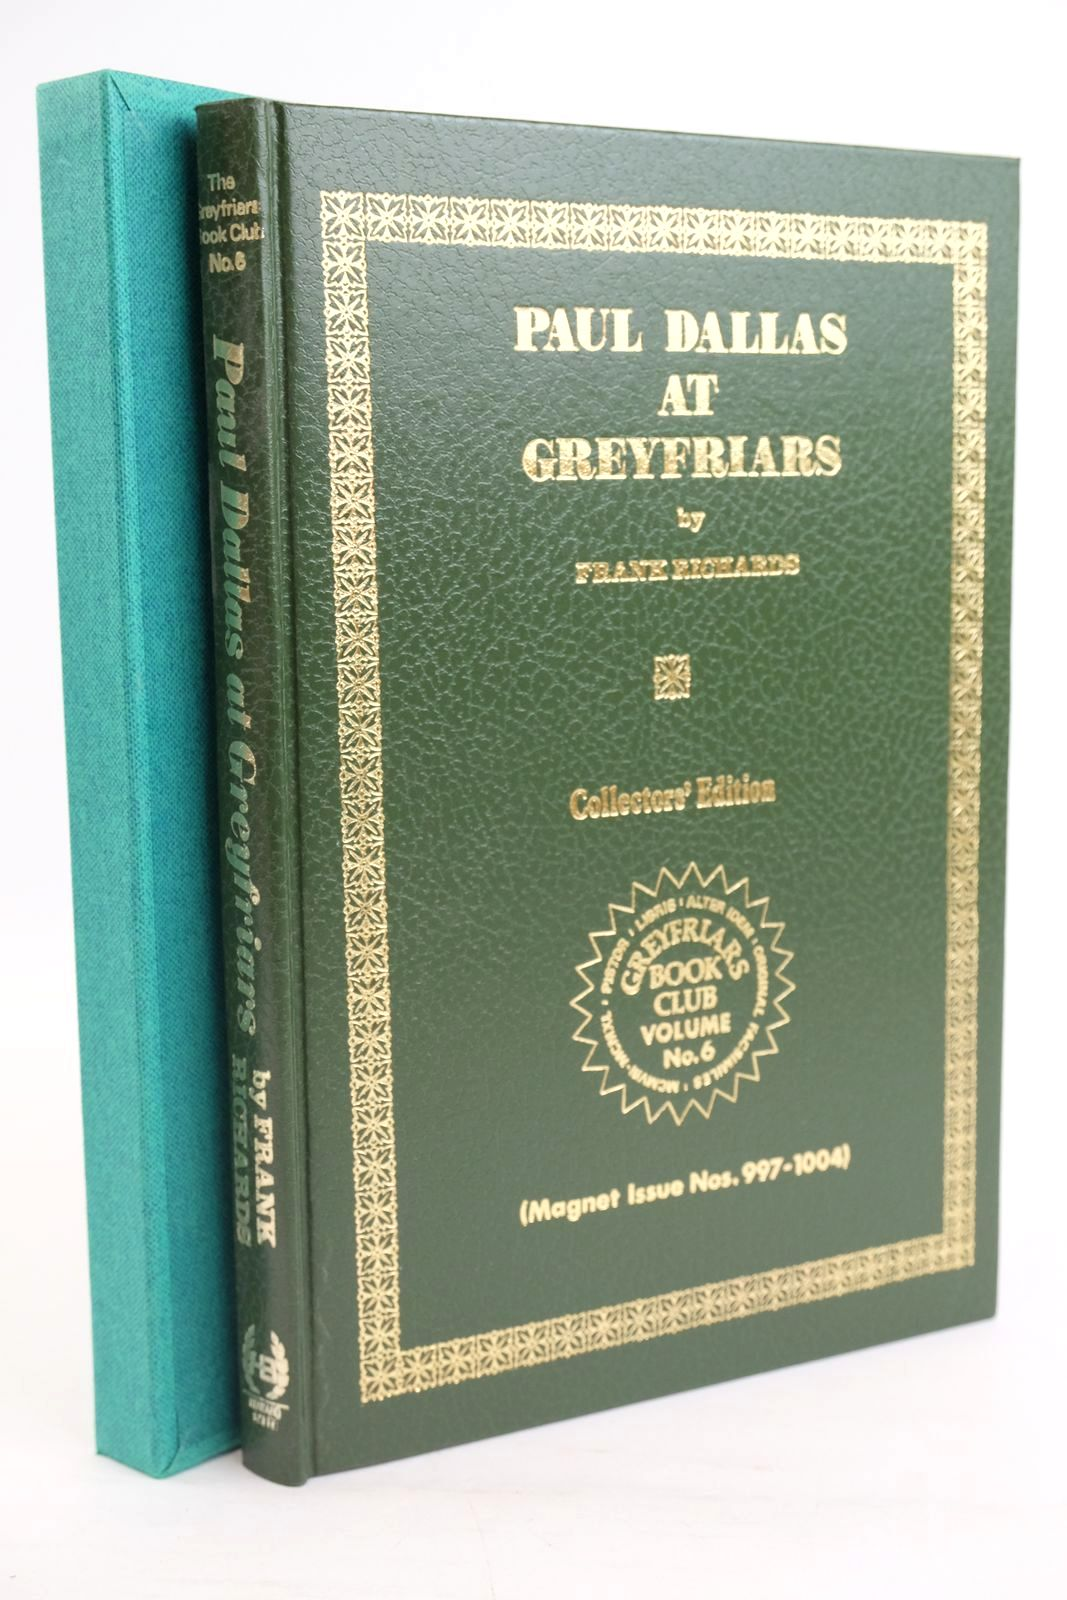 Photo of PAUL DALLAS AT GREYFRIARS written by Richards, Frank published by Howard Baker Press (STOCK CODE: 1319767)  for sale by Stella & Rose's Books